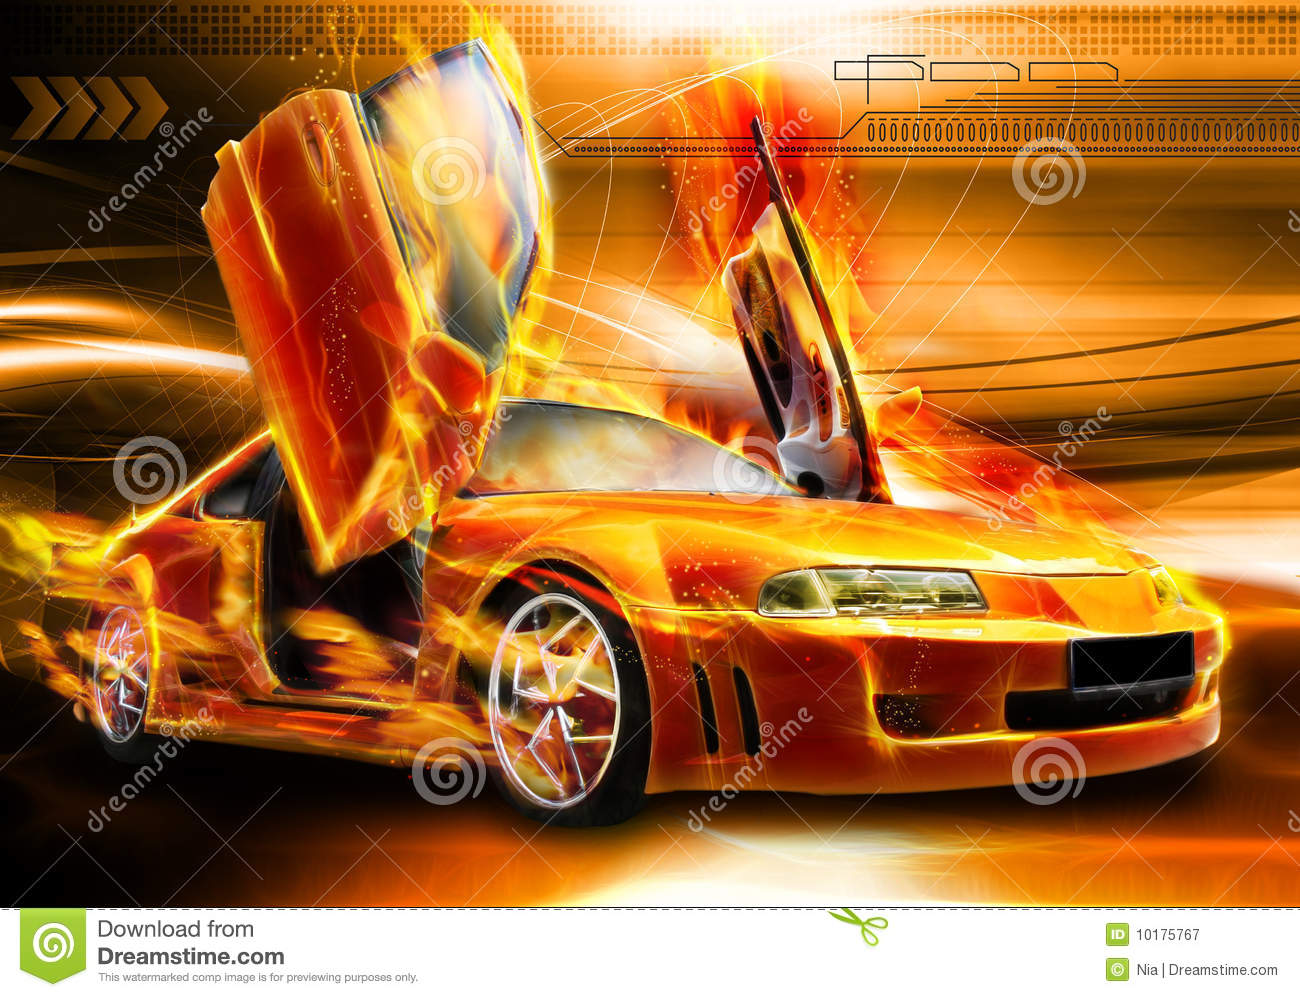 Fast And Furious Car Wallpaper Download Burning Car Background Royalty Free Stock Photography